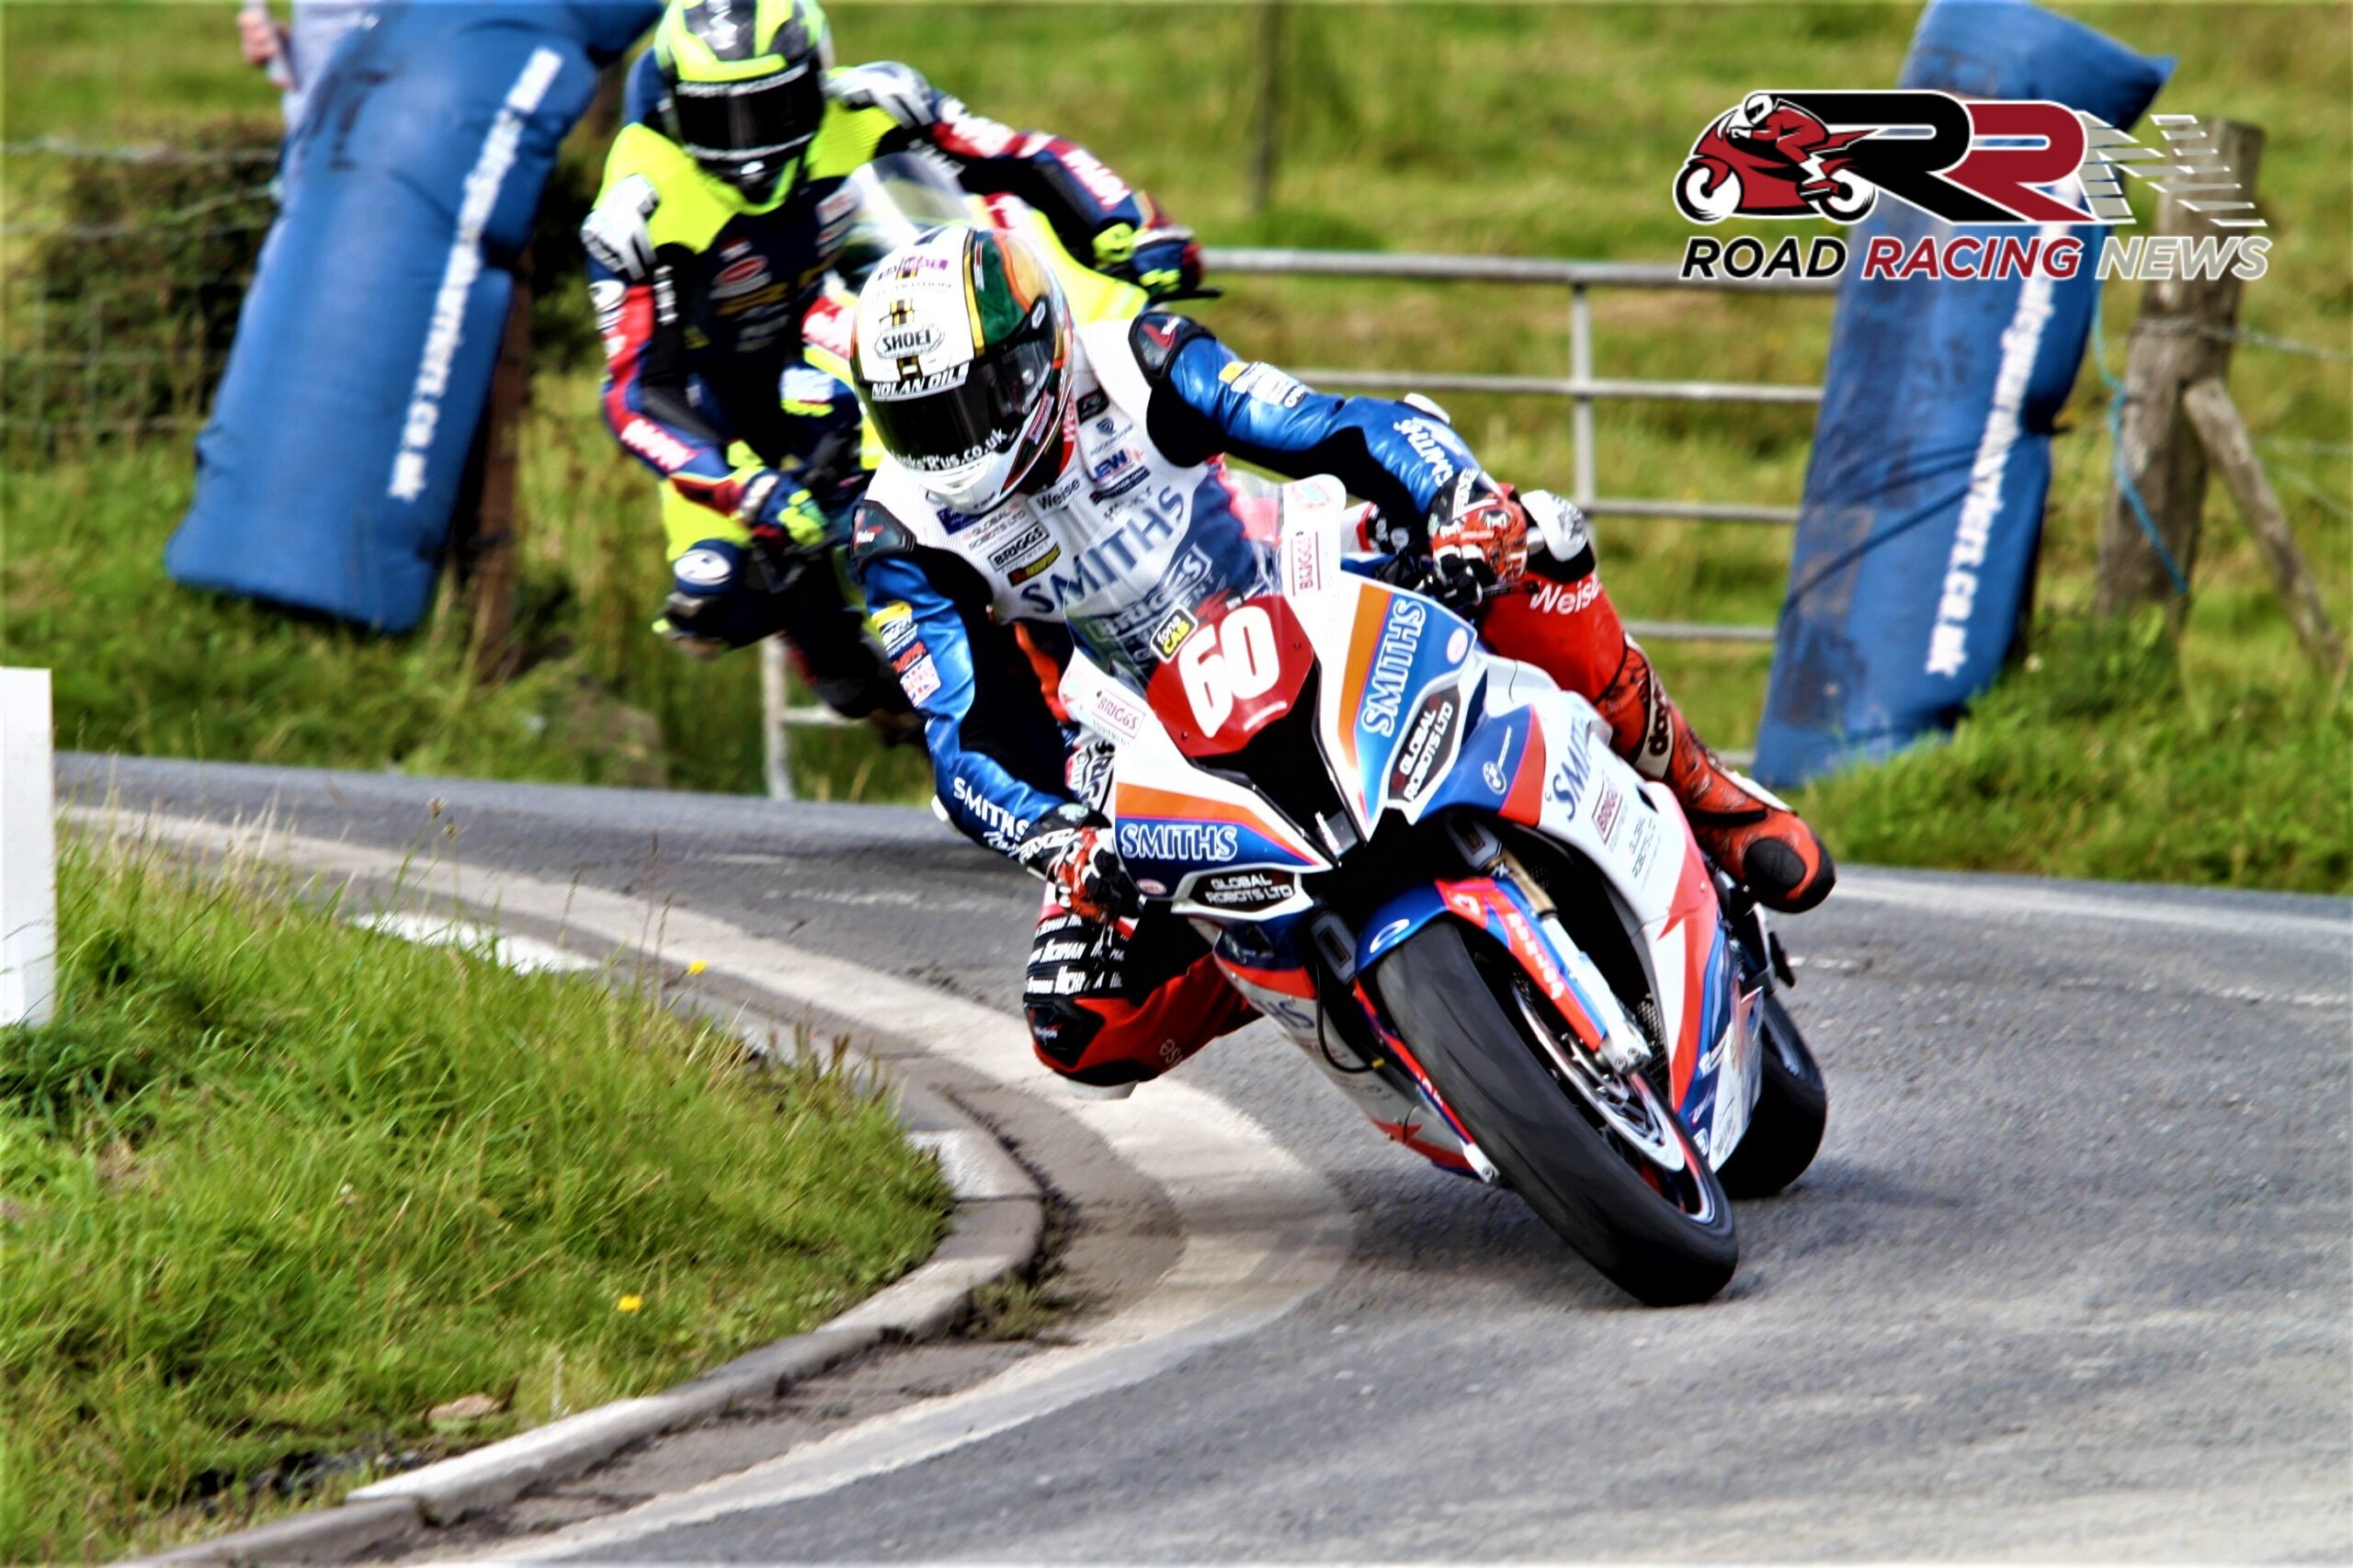 FonaCAB Ulster Grand Prix: Hickman Takes Superstock Pole By 1.88 Seconds